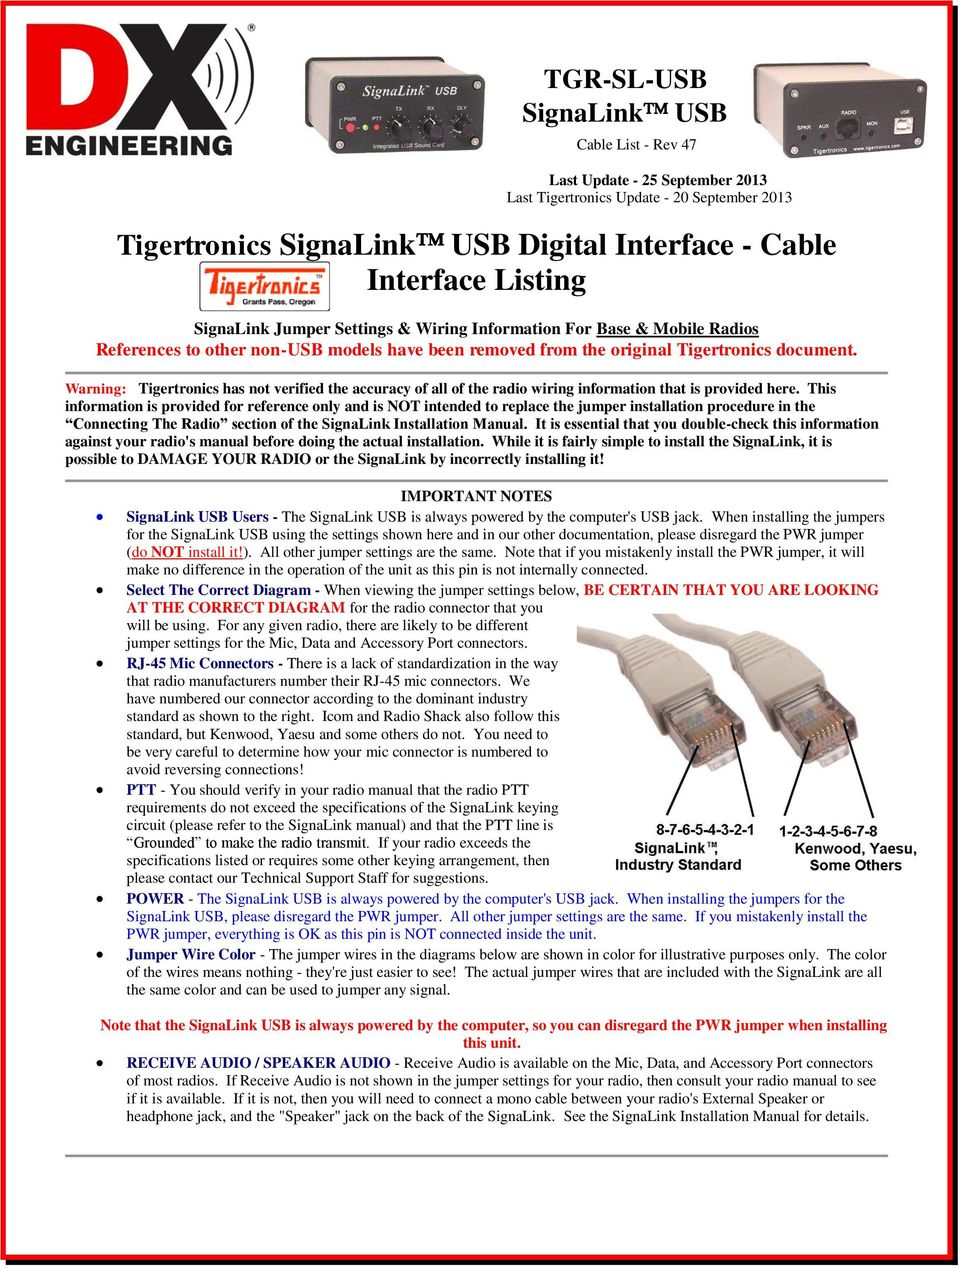 medium resolution of warning tigertronics has not verified the accuracy of all of the radio wiring information that